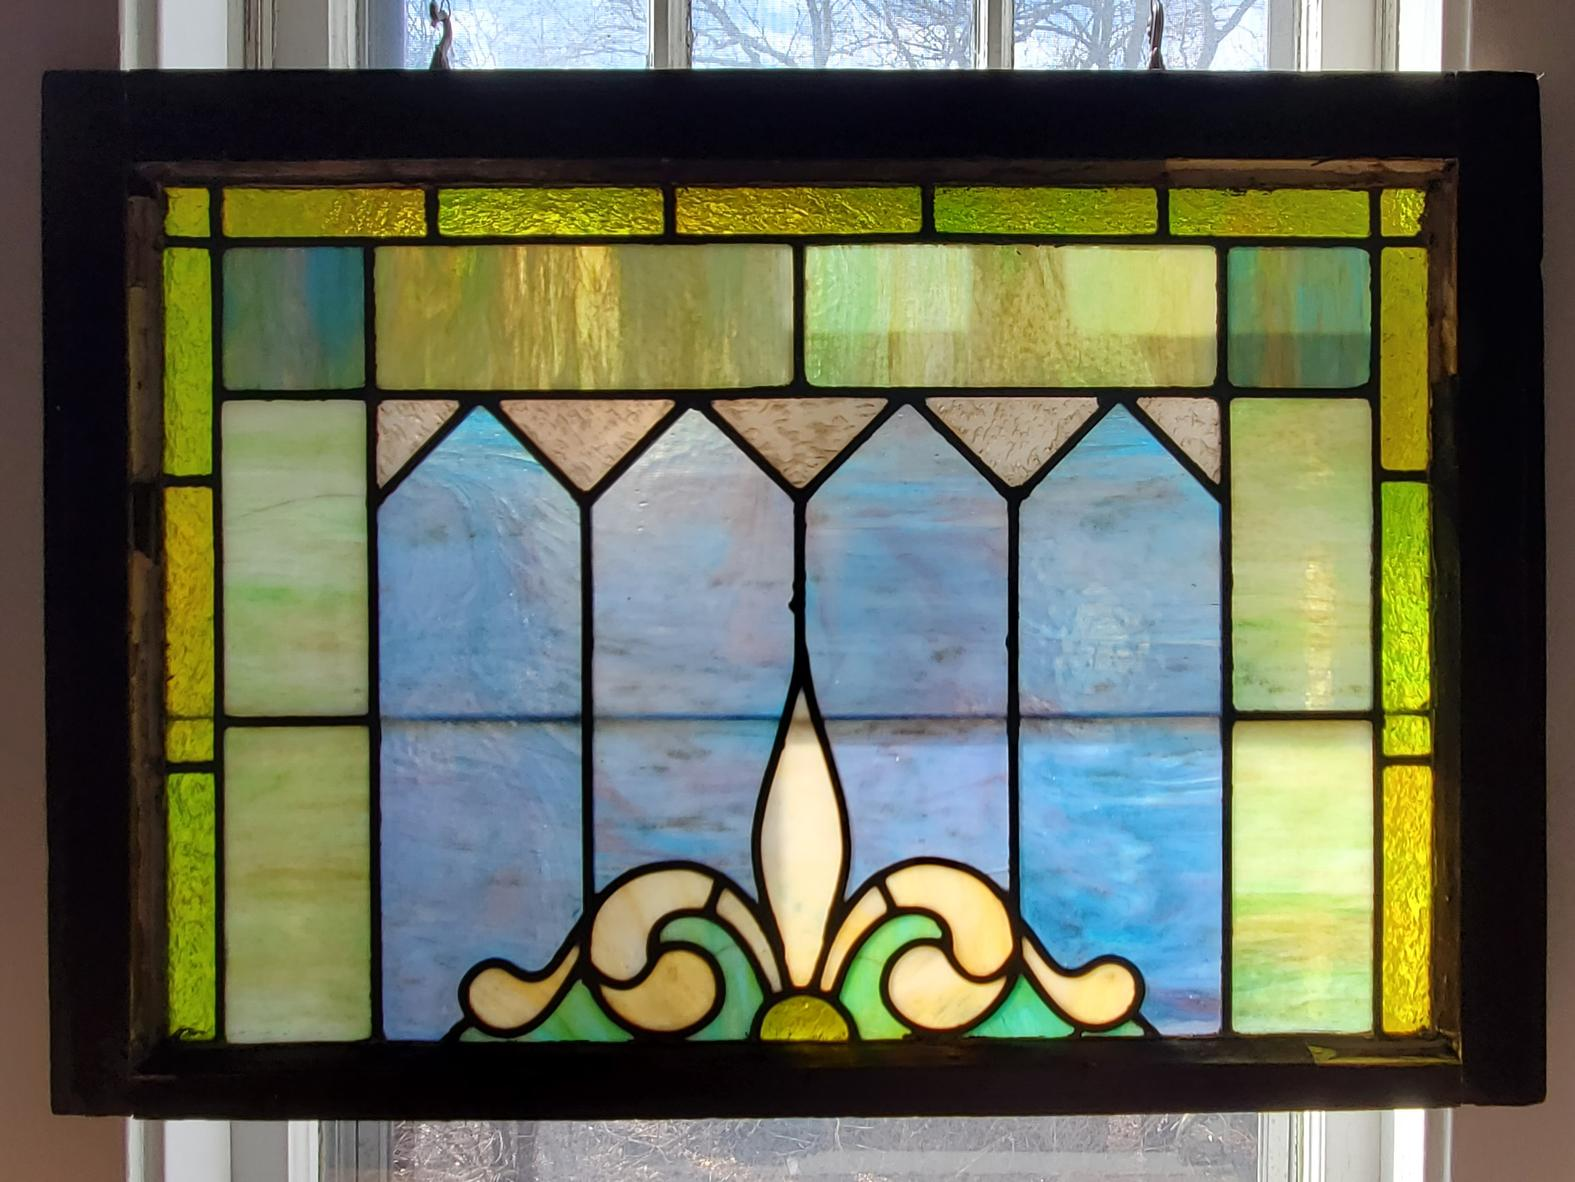 Fleur de lis in Spring Stained Glass Window 007